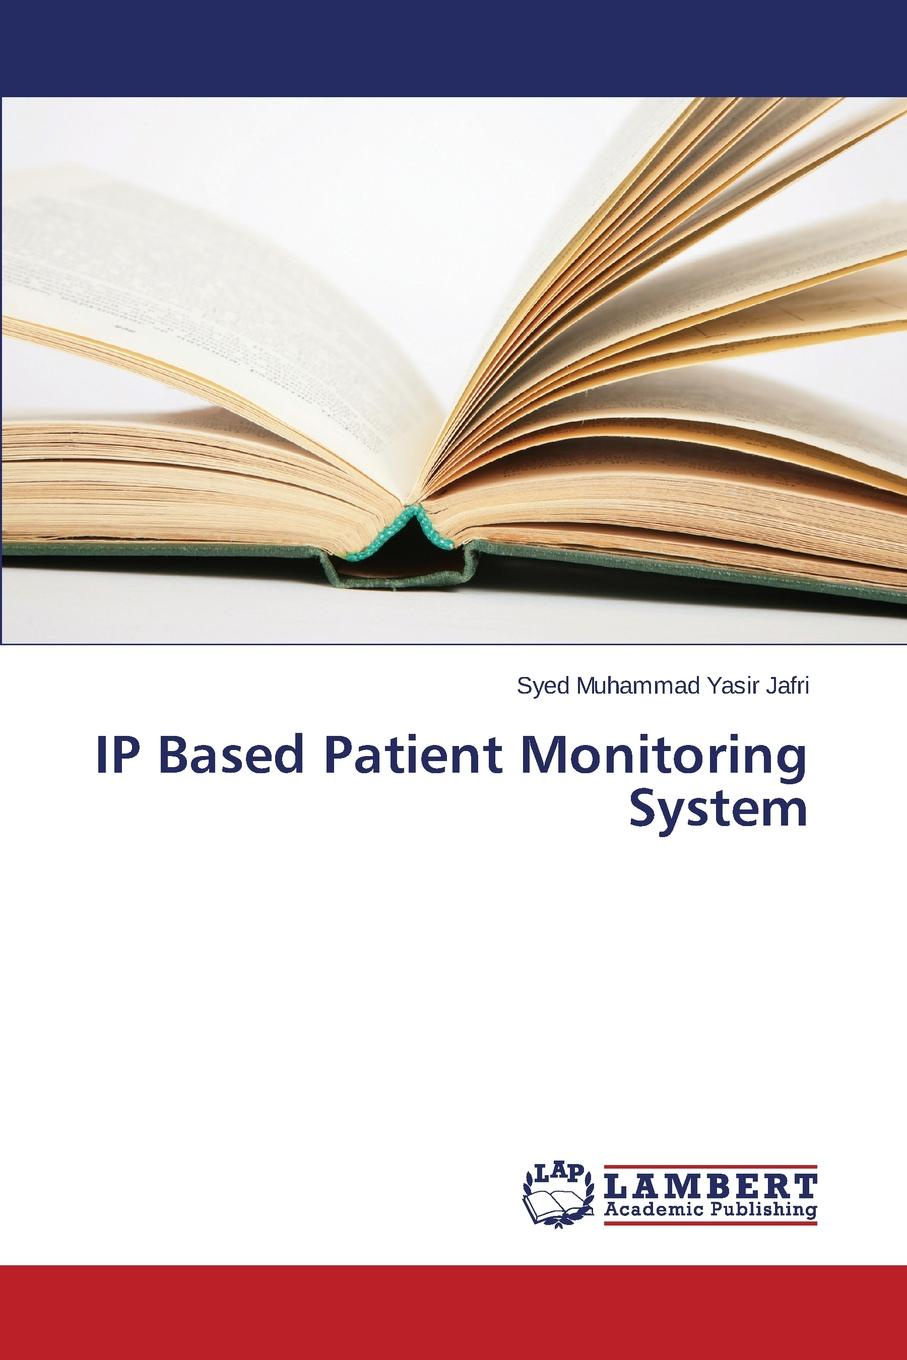 Jafri Syed Muhammad Yasir IP Based Patient Monitoring System realand tcp ip biometric fingerprint and rfid card time attendance for 2000 users with free different language software and sdk